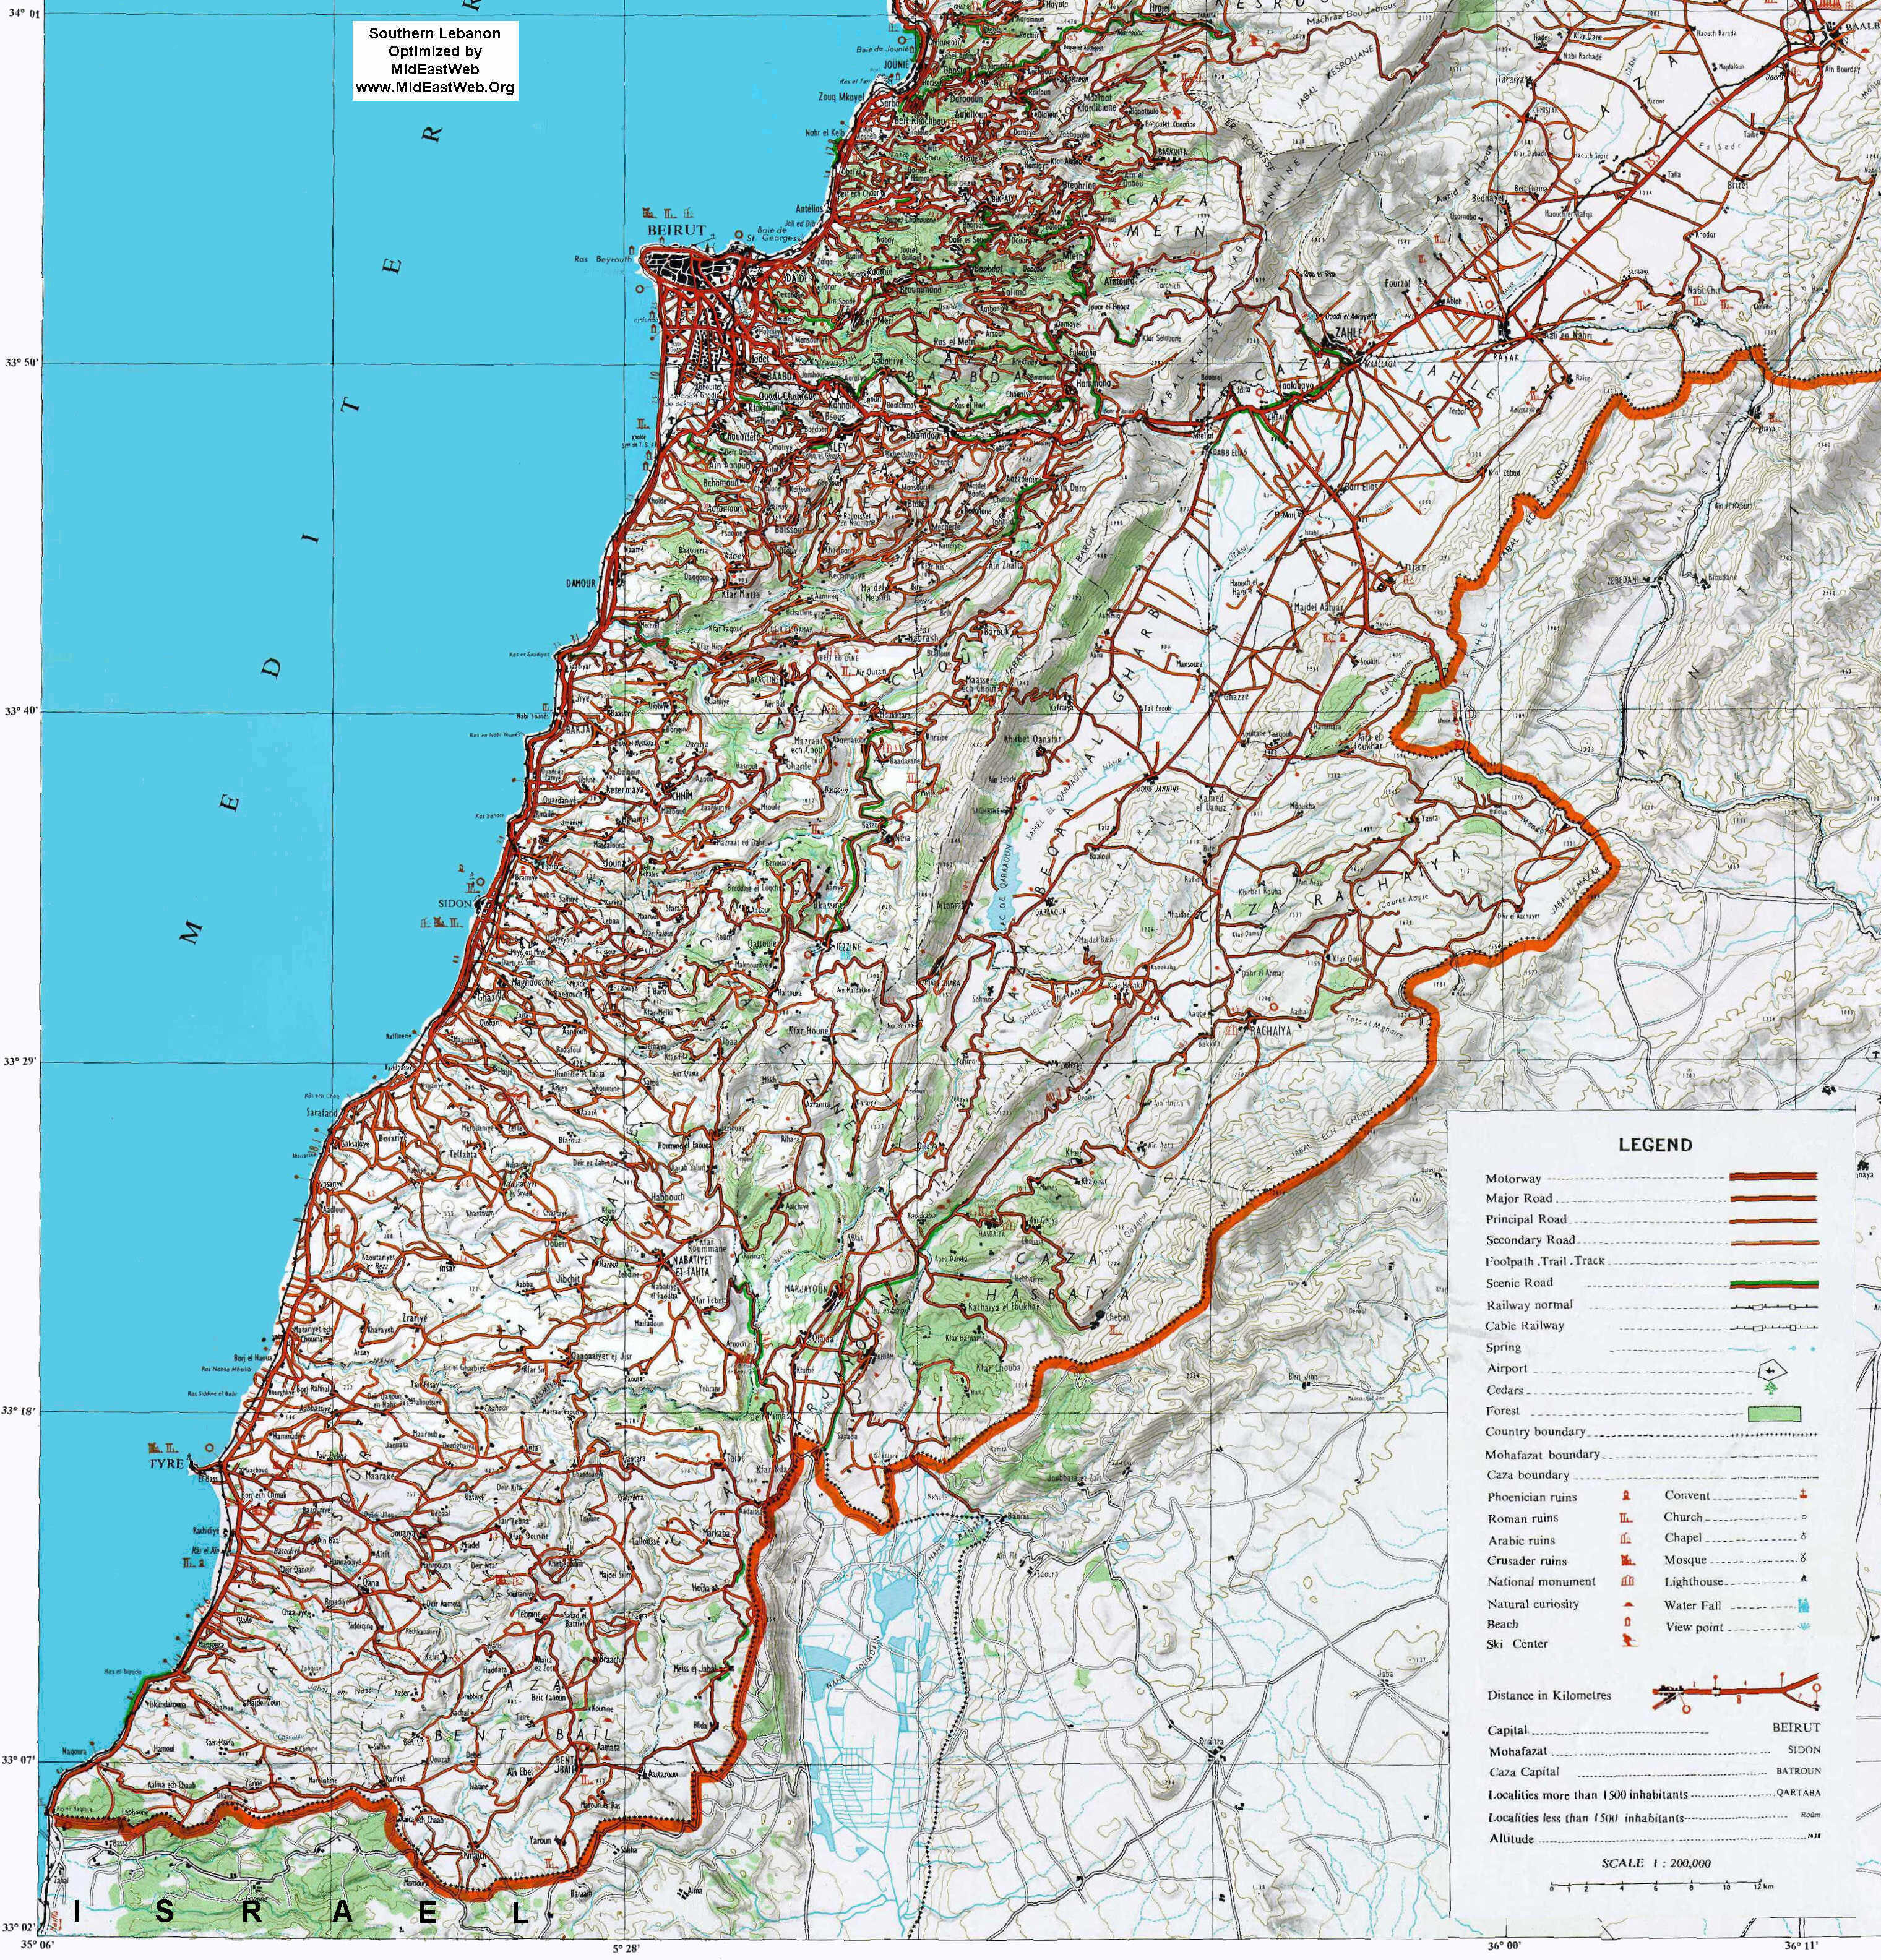 Map of South Lebanon - Detailed Beirut On Map on nicosia on map, doha on map, zagros mountains on map, cairo on map, baghdad on map, amman on map, west bank on map, kabul on map, muscat on map, tel aviv on map, damascus on map, manama on map, middle east map, riyadh on map, istanbul on map, tehran on map, sanaa on map, dubai on map, lebanon on map, harare on map,